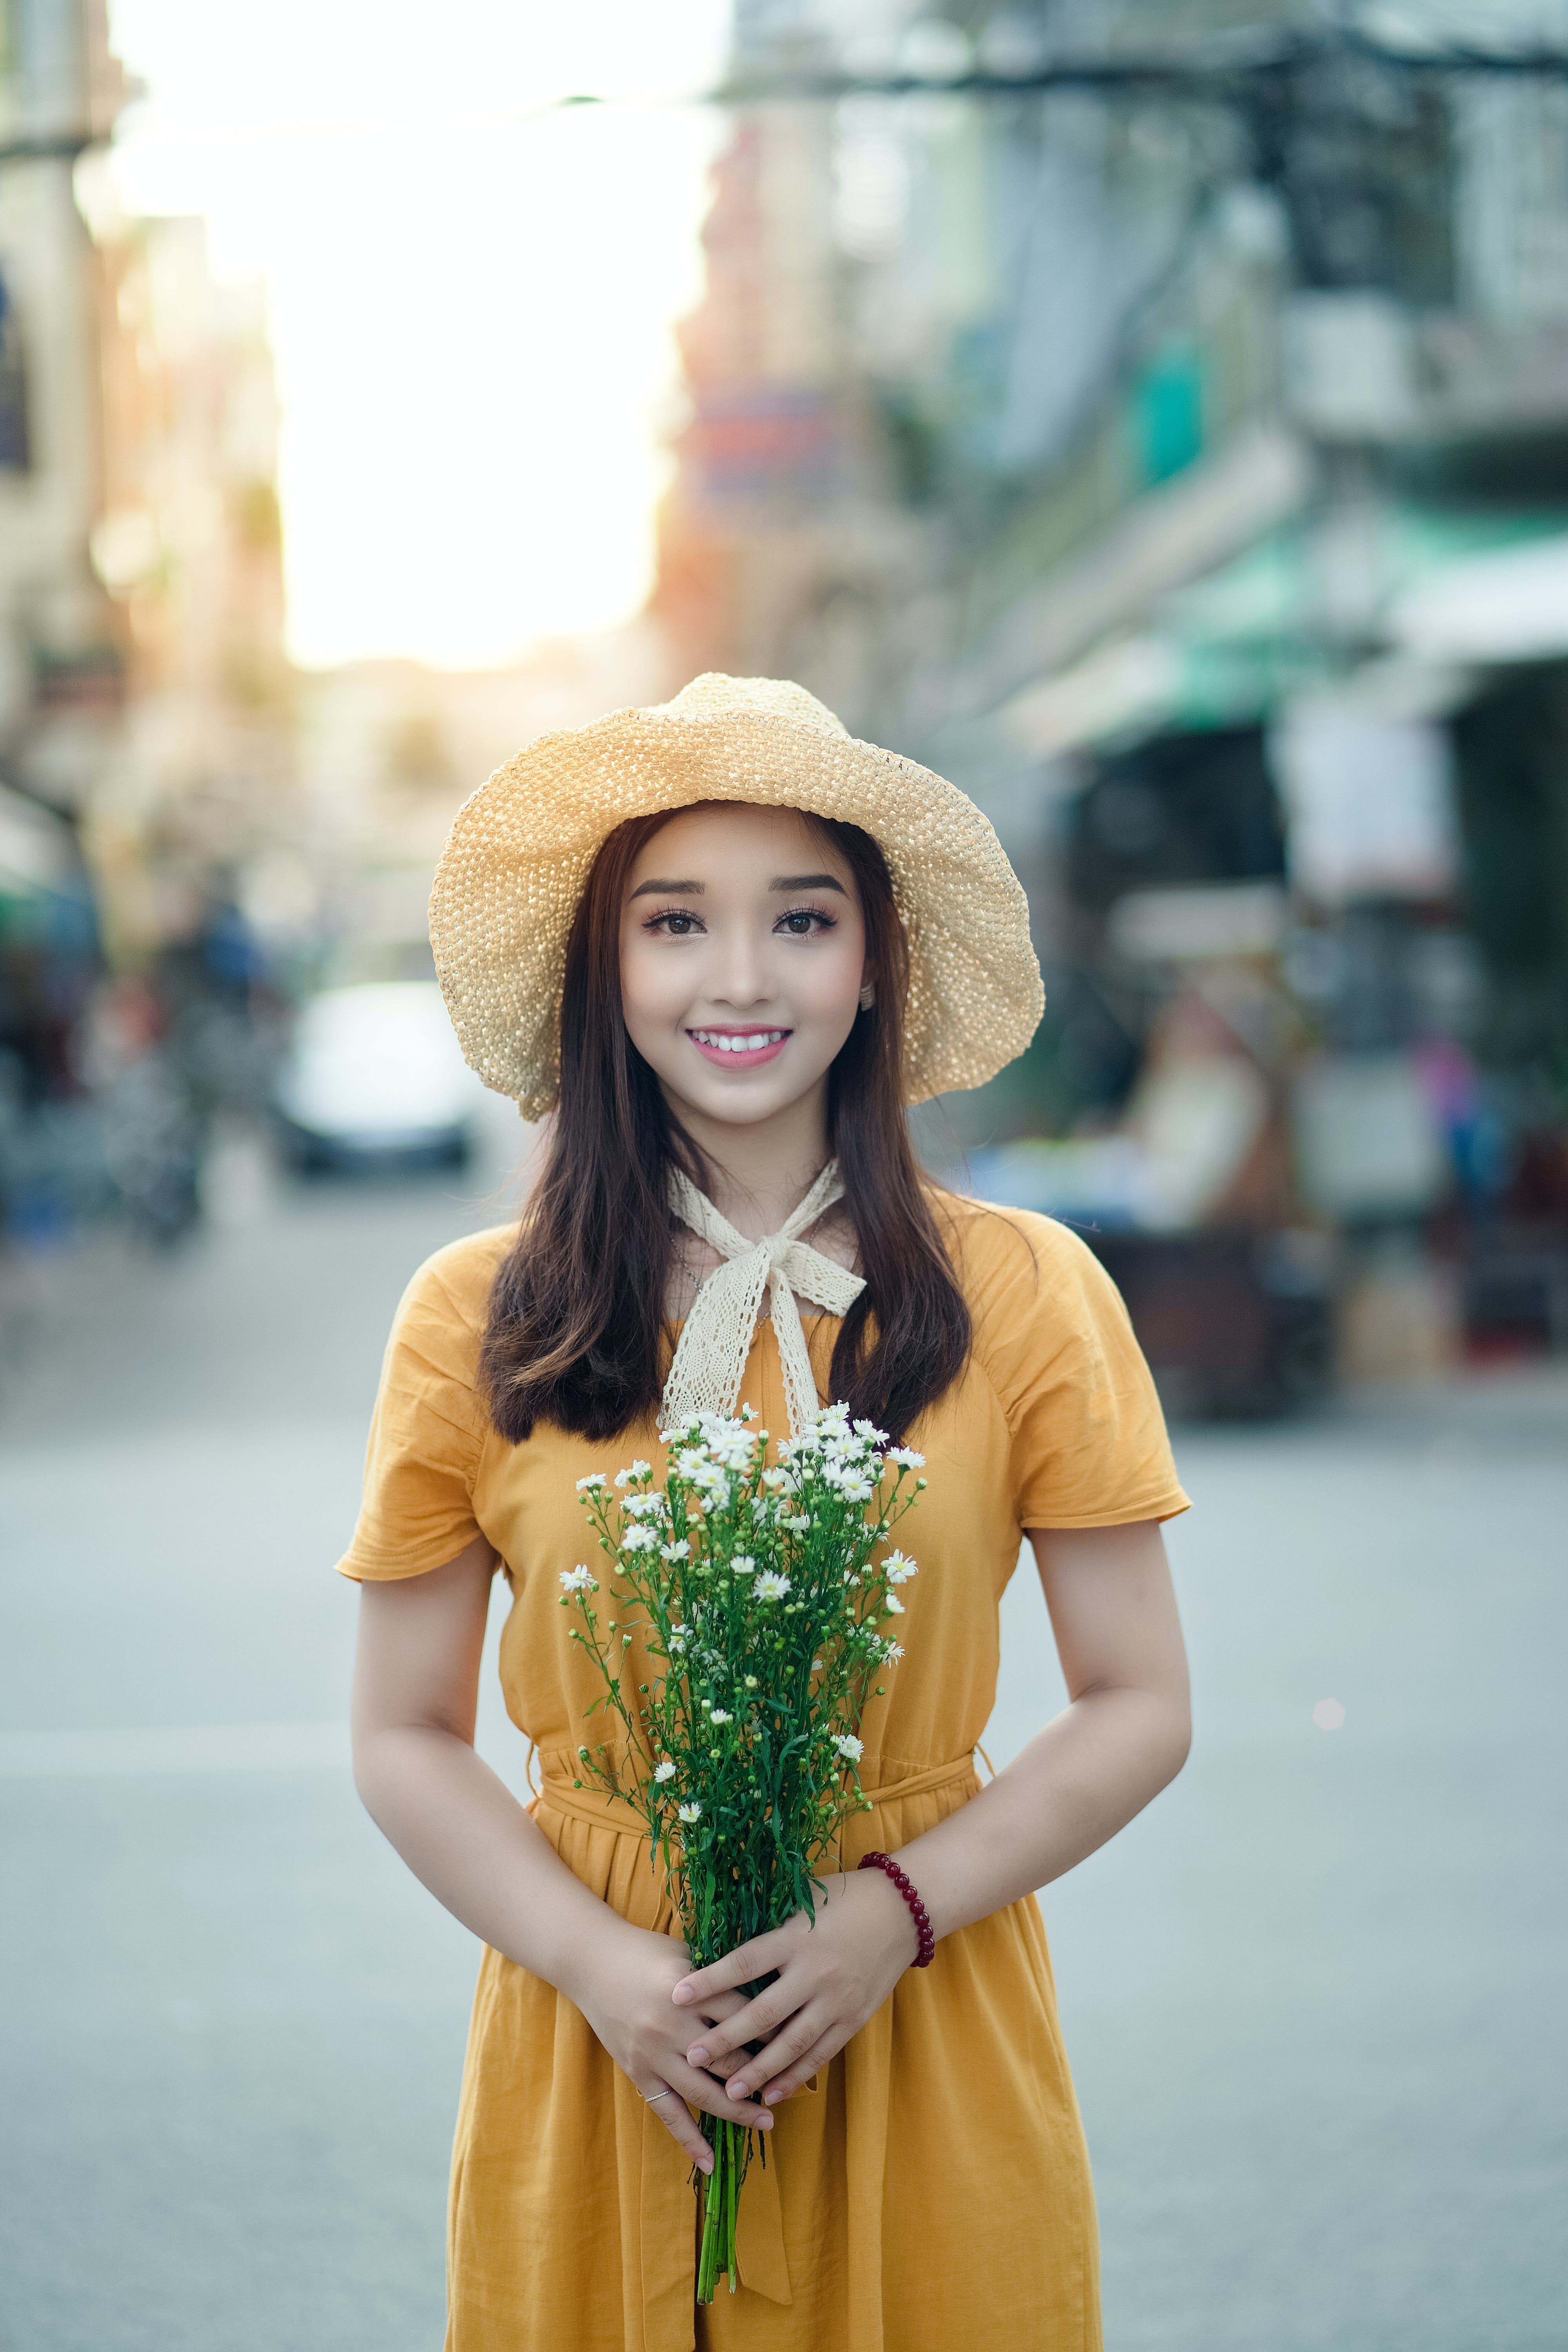 Selective Focus Photography Of Woman Holding Flowers